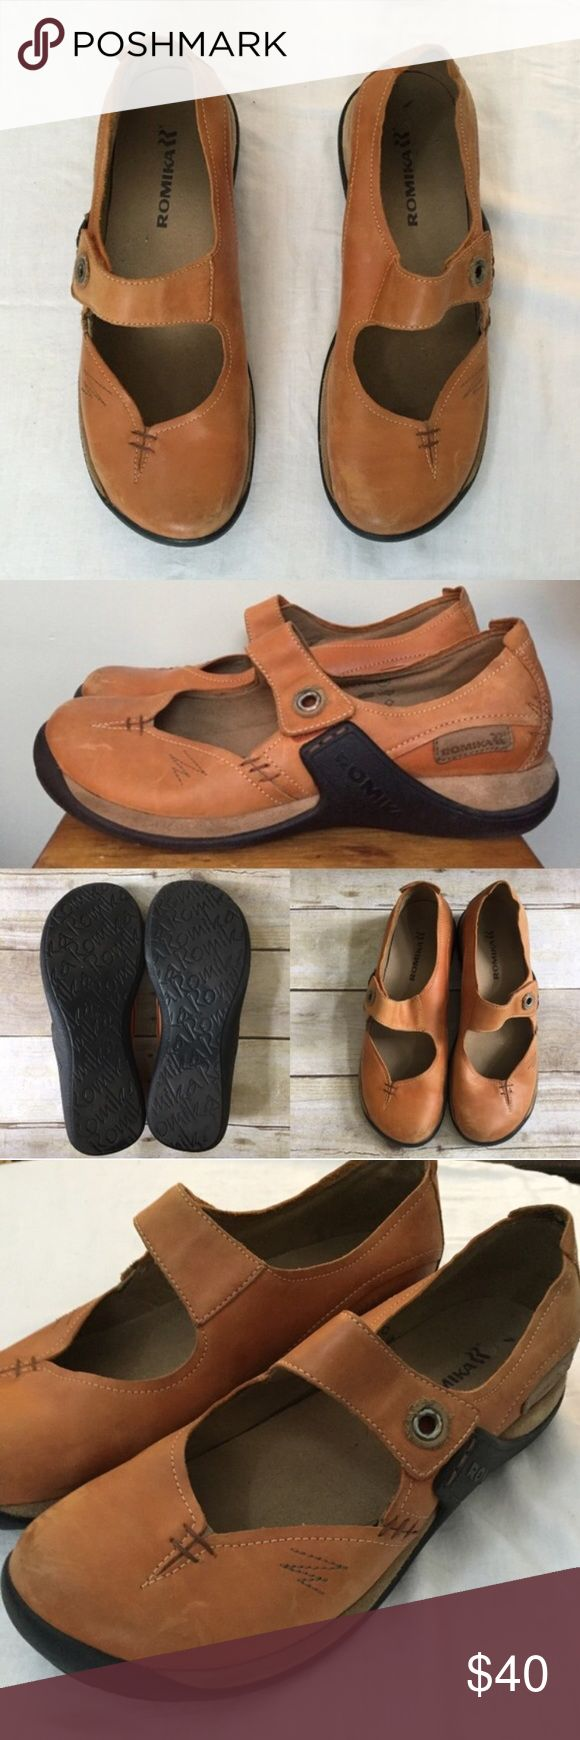 Romika | Orange Leather Outdoorsy Mary Jane Shoes Size 40. Velcro strap. Rubber soles. Orange leather with tan stitching and black Soles. Anatomically shaped footbed with arch support. Purisoft technology makes these soft and comfortable. Wear shown in photos. **i am a true 9.5 and these fit. Romika Shoes